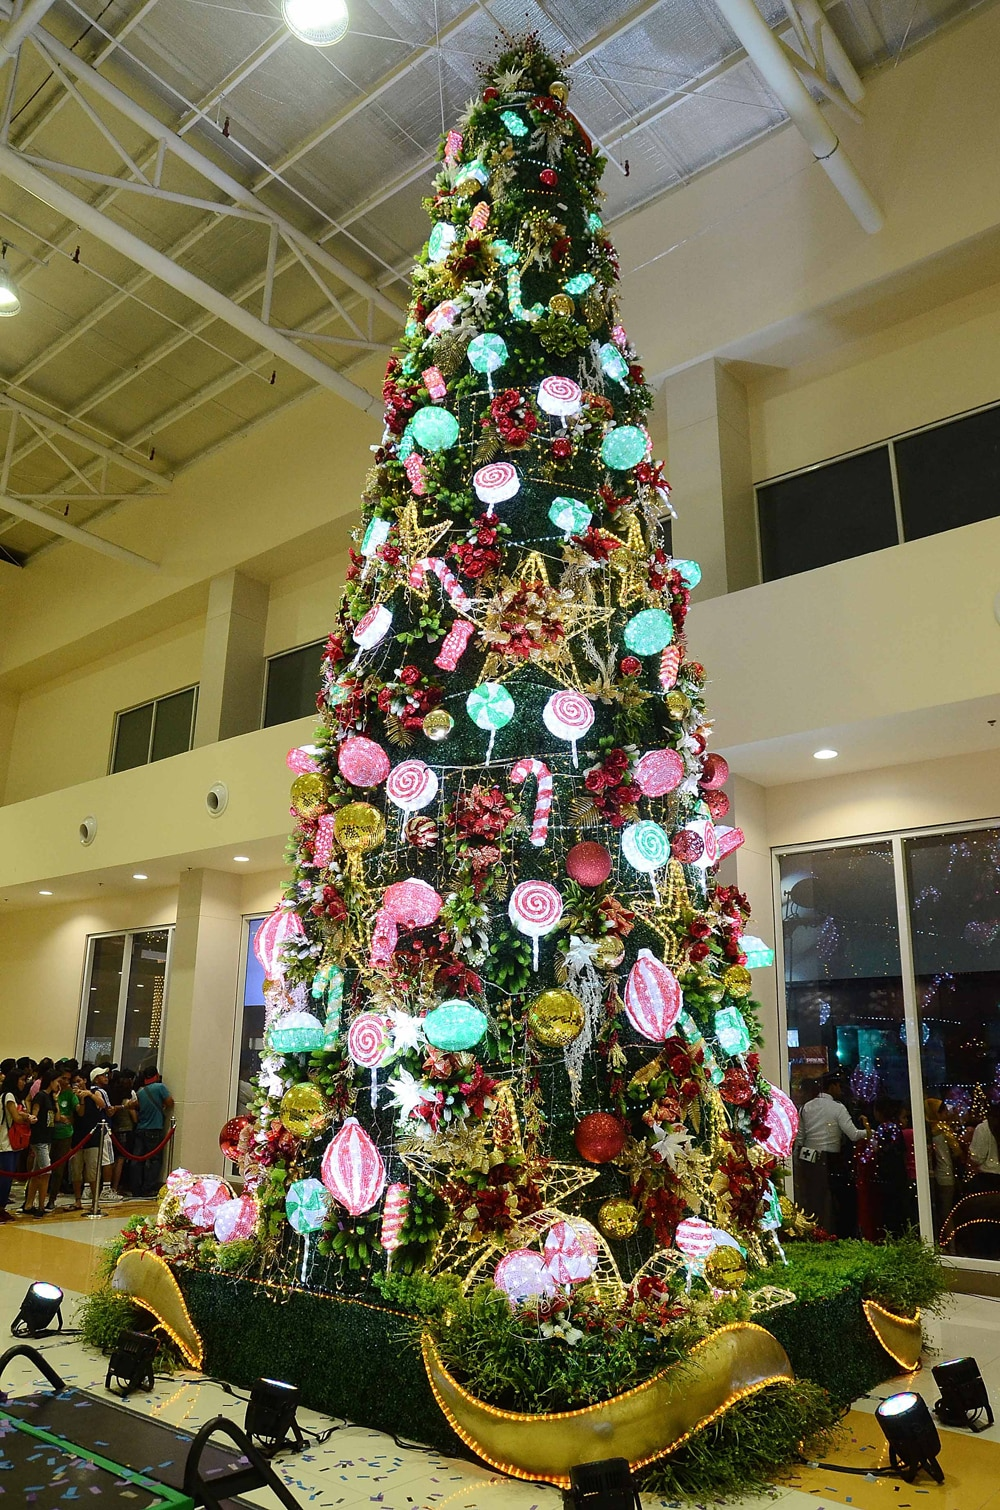 robinsons novaliches - Giant Christmas Tree